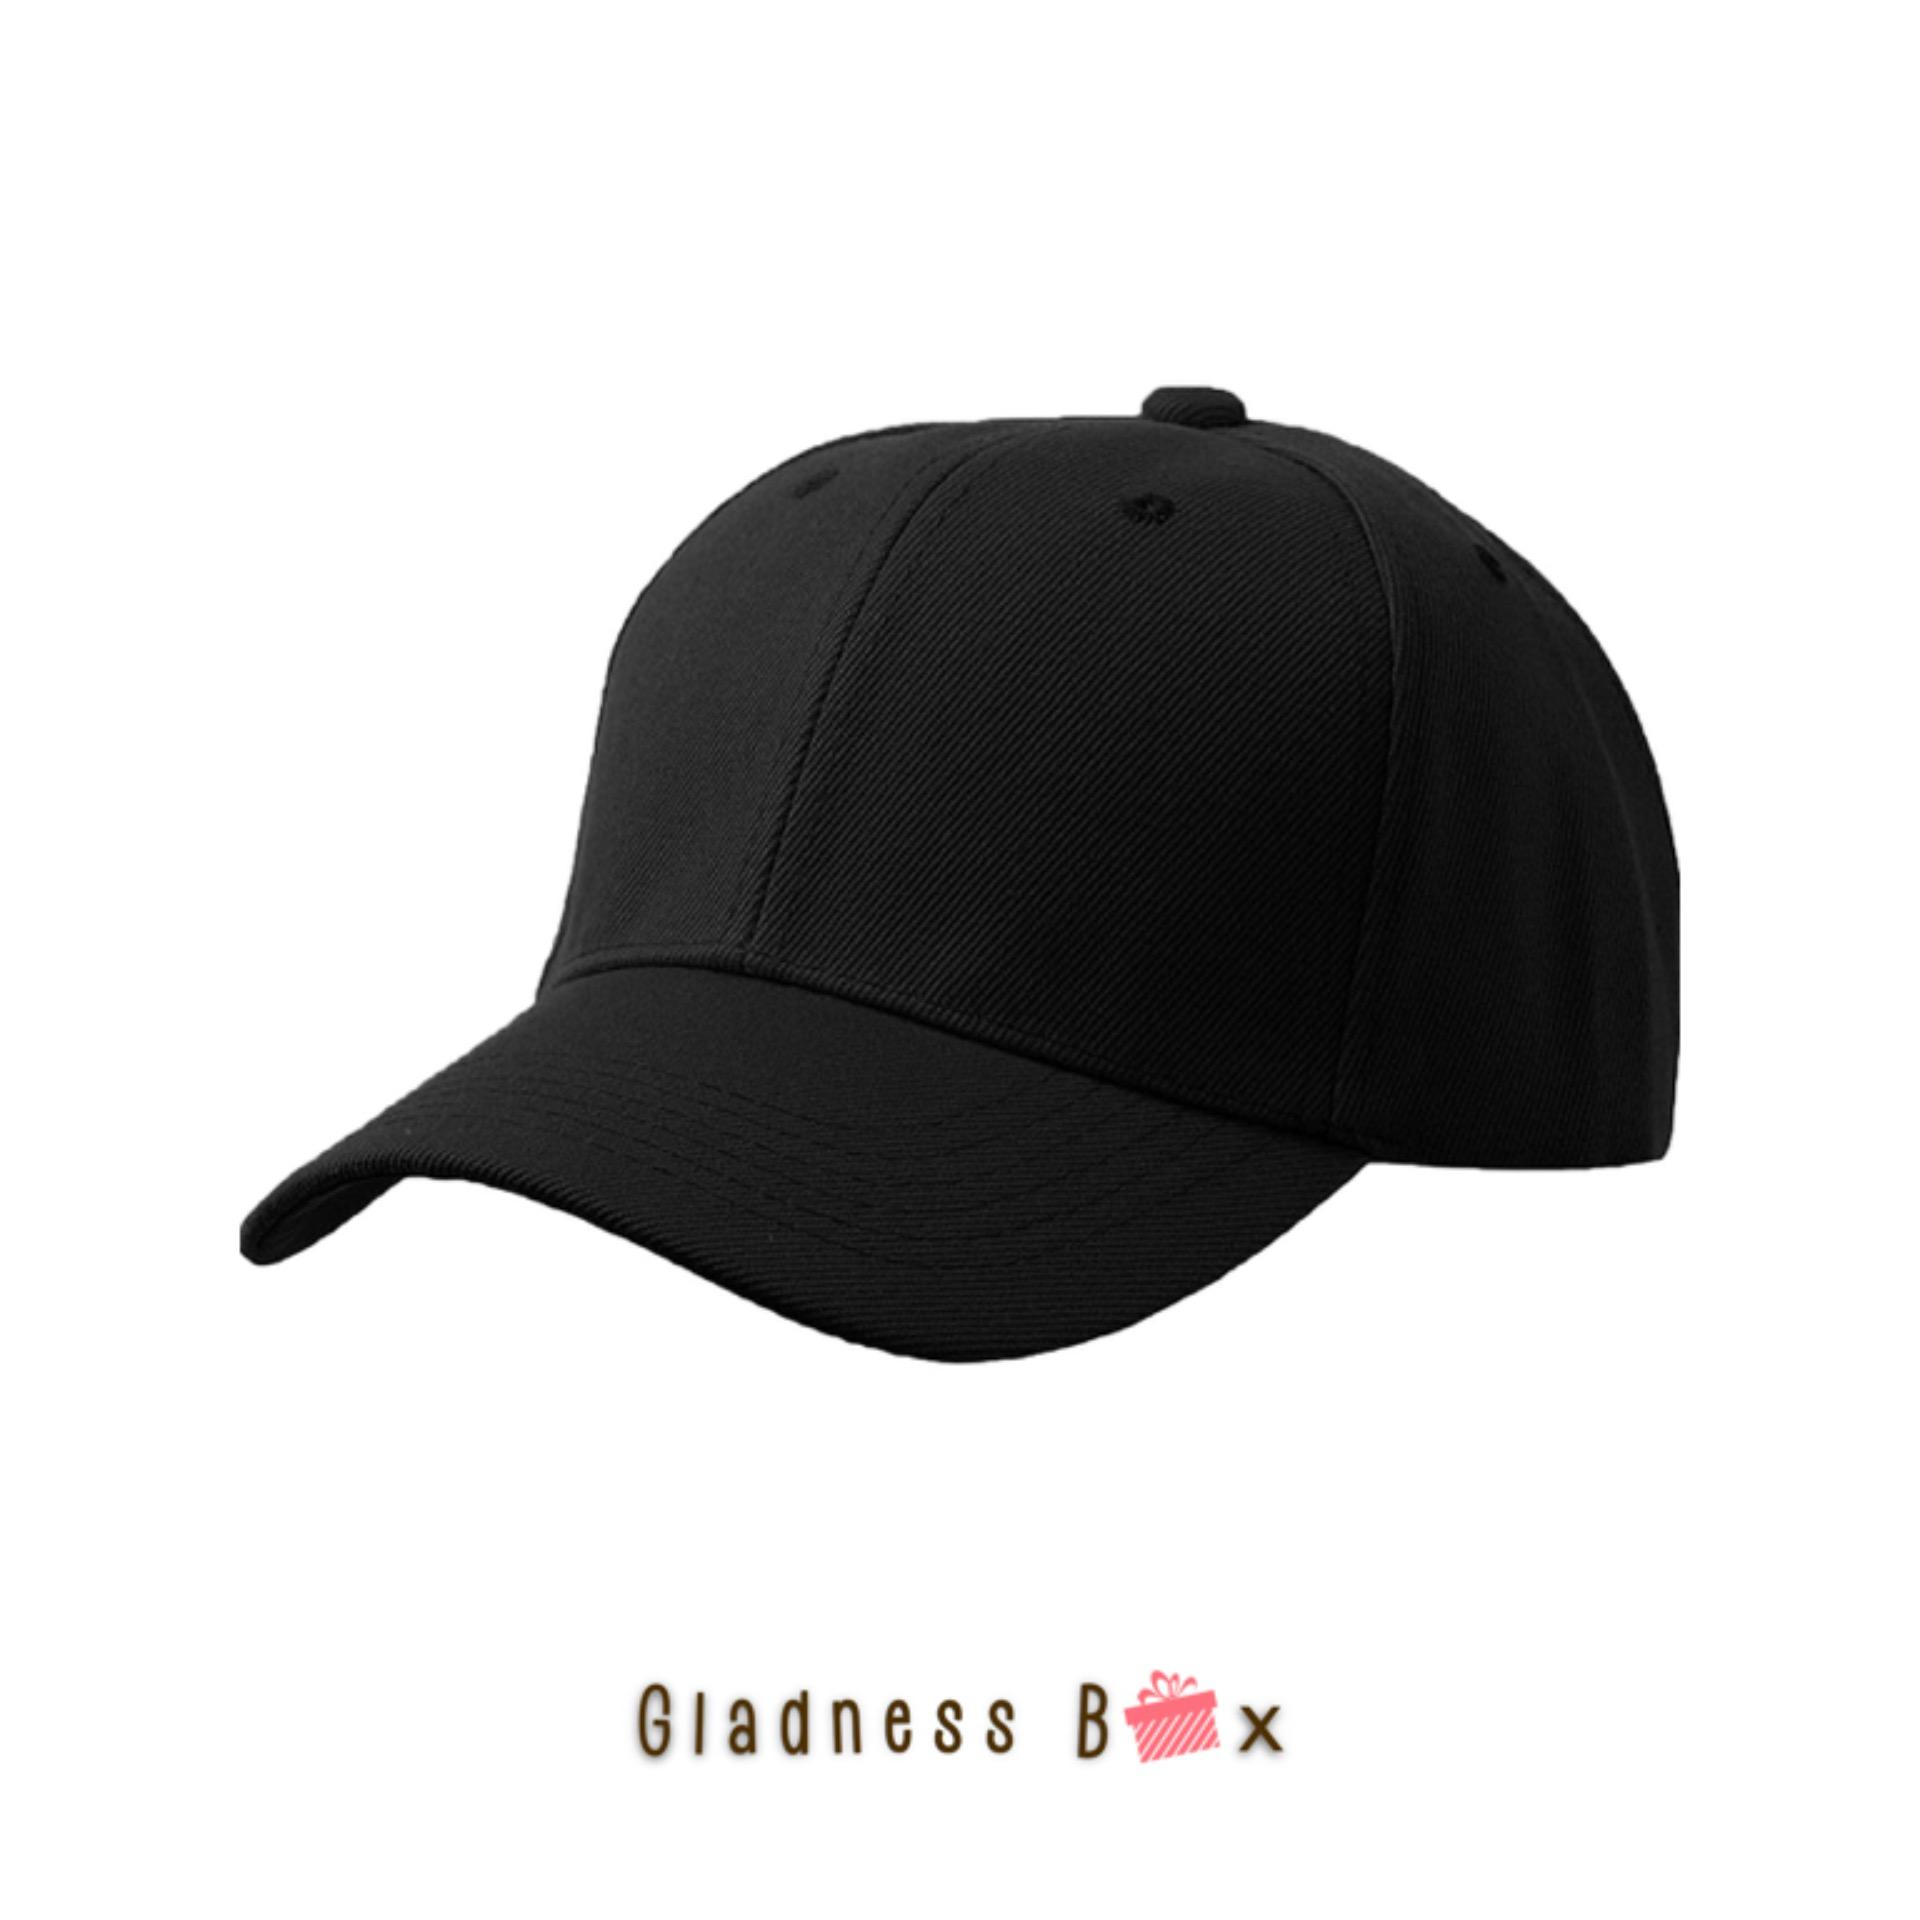 Gladness Box High Quality Plain Baseball Cap for Men Women Unisex 02dc56c38